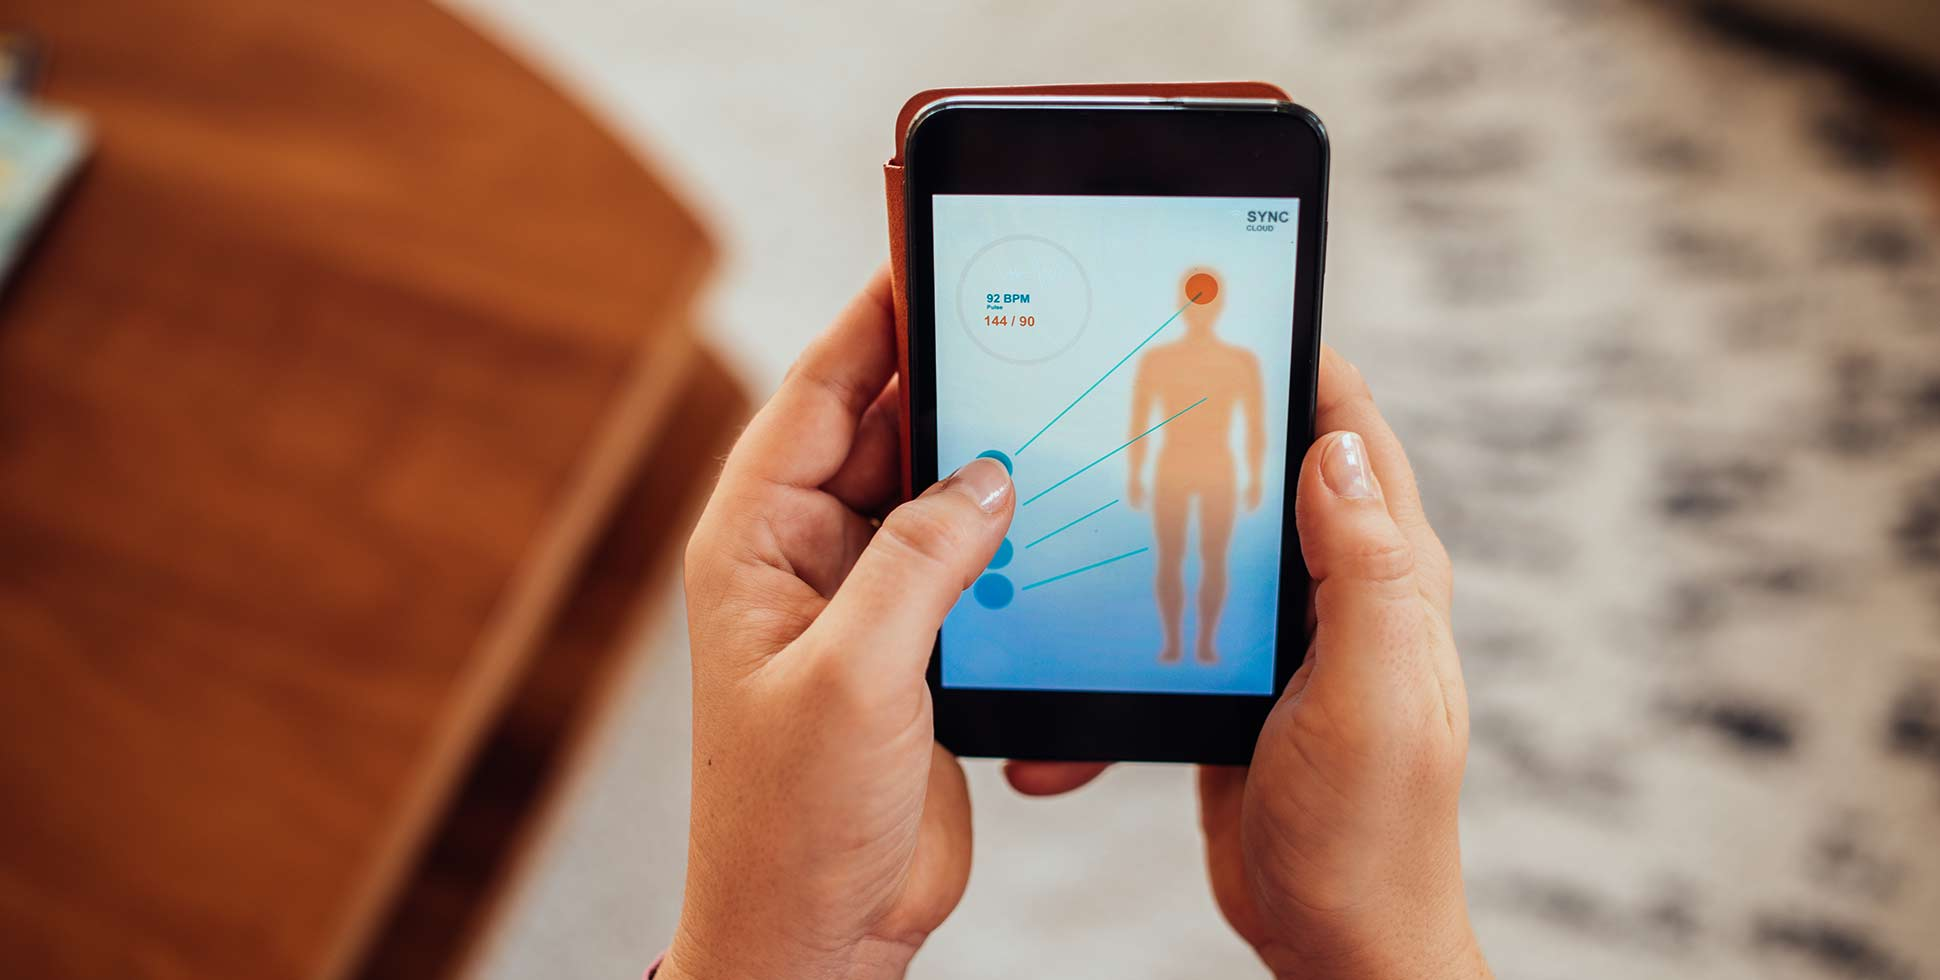 CES 2021: Where's the Clinical Value in Digital Health Devices?